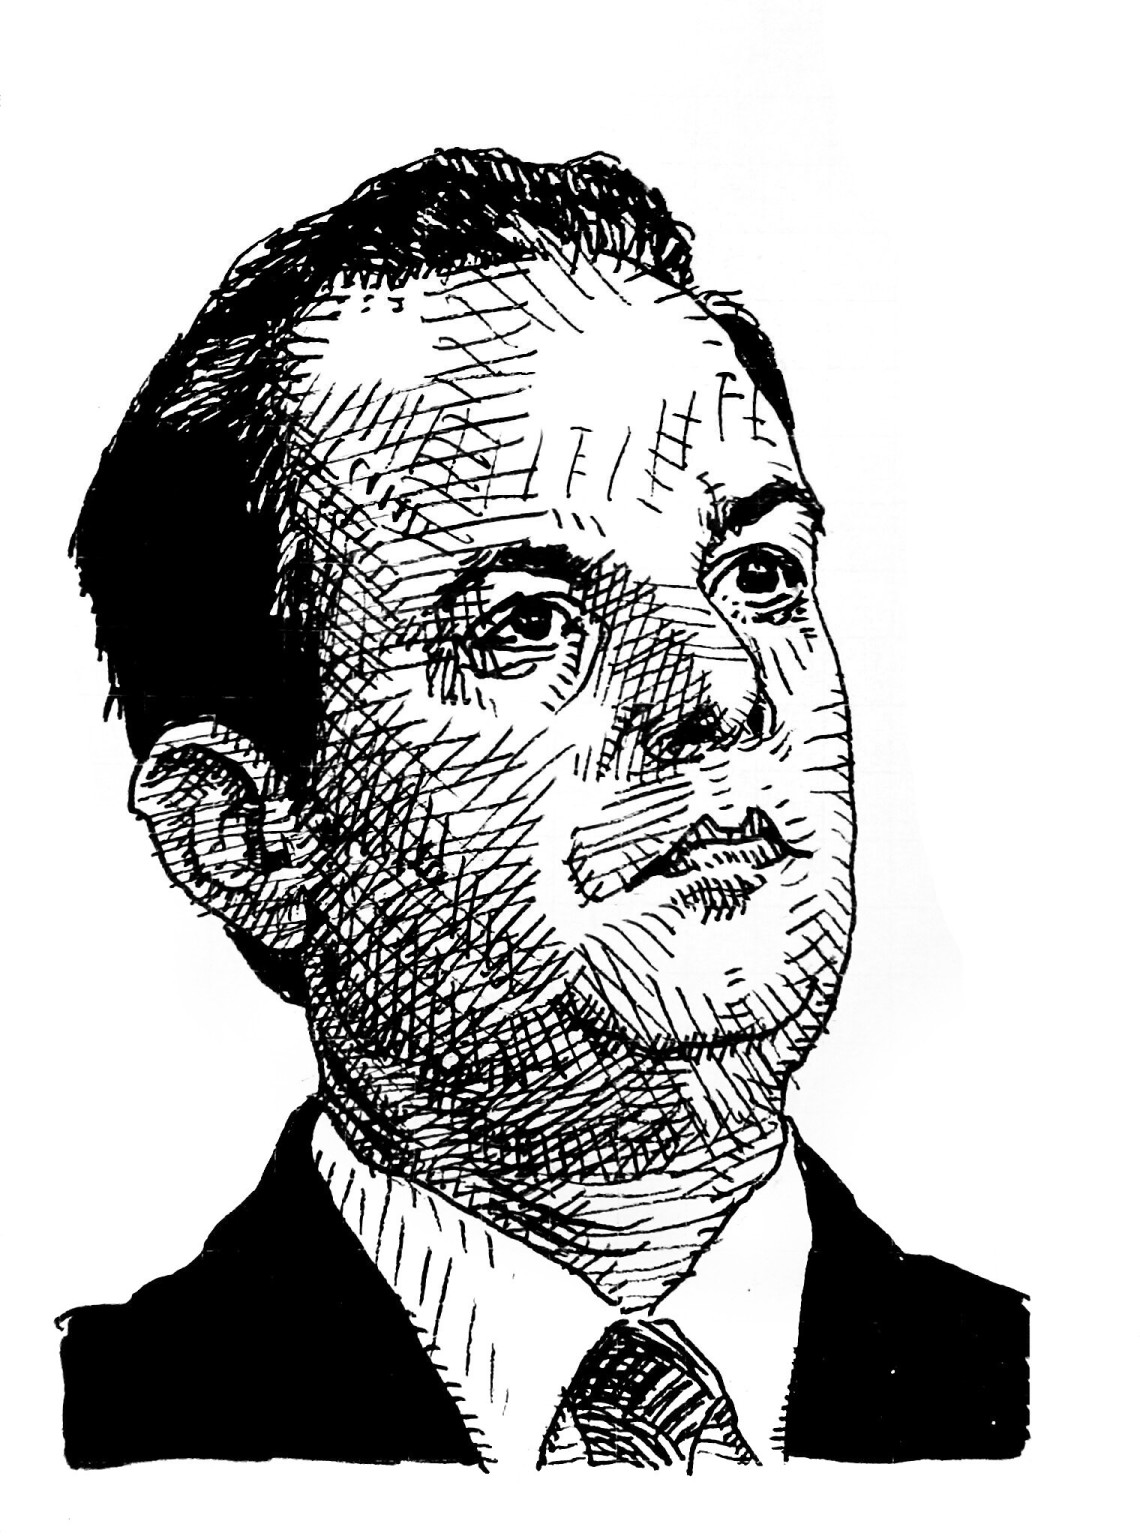 Reince Priebus illustration